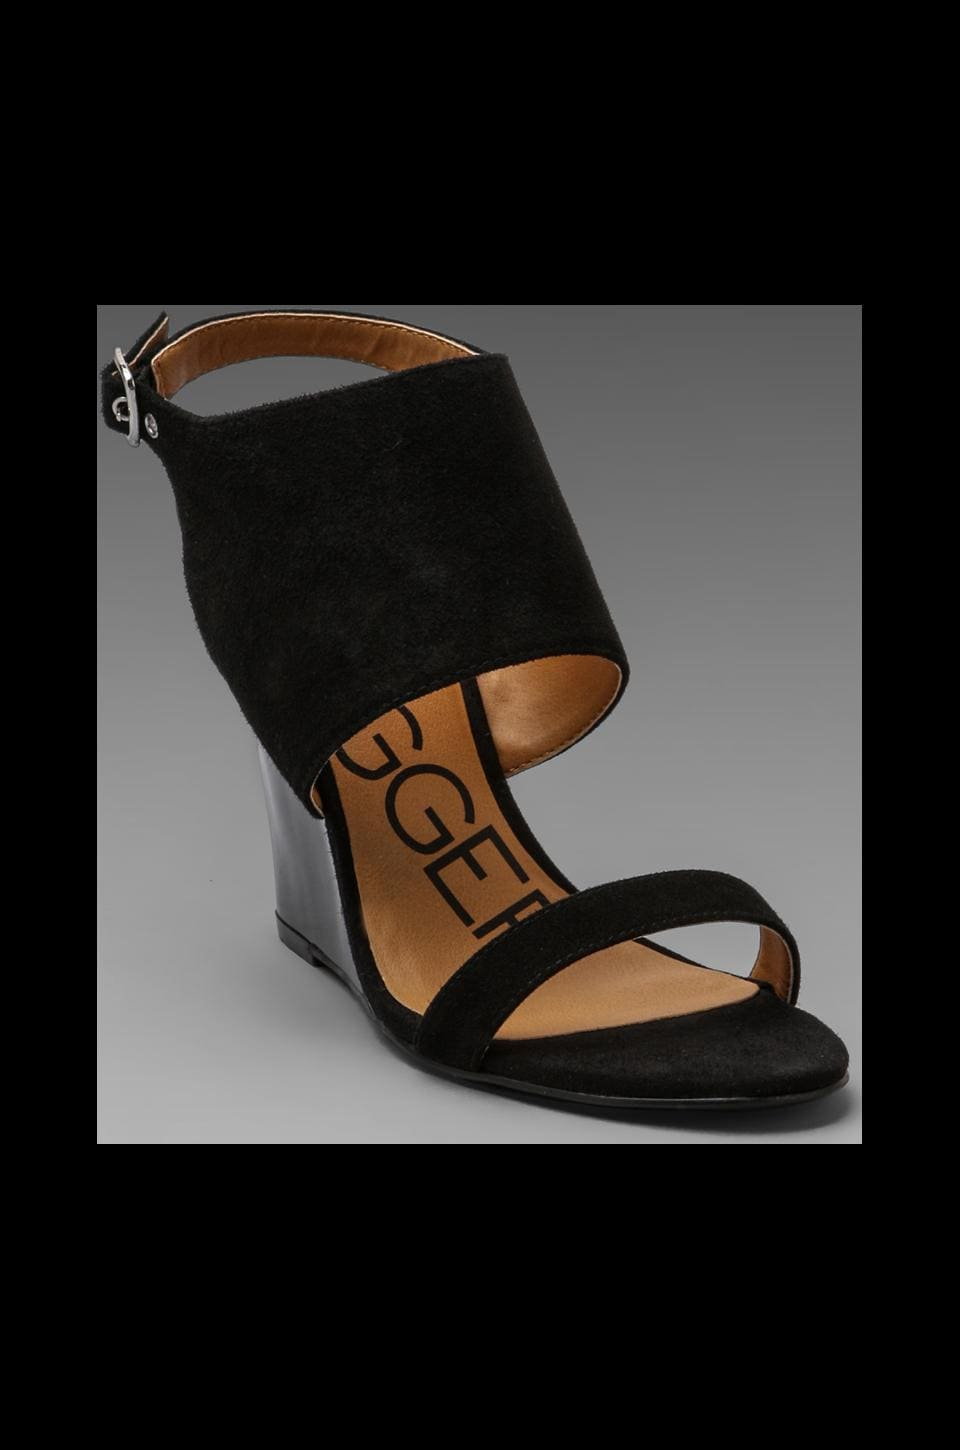 Kelsi Dagger Ellice Wedge Sandal in Black